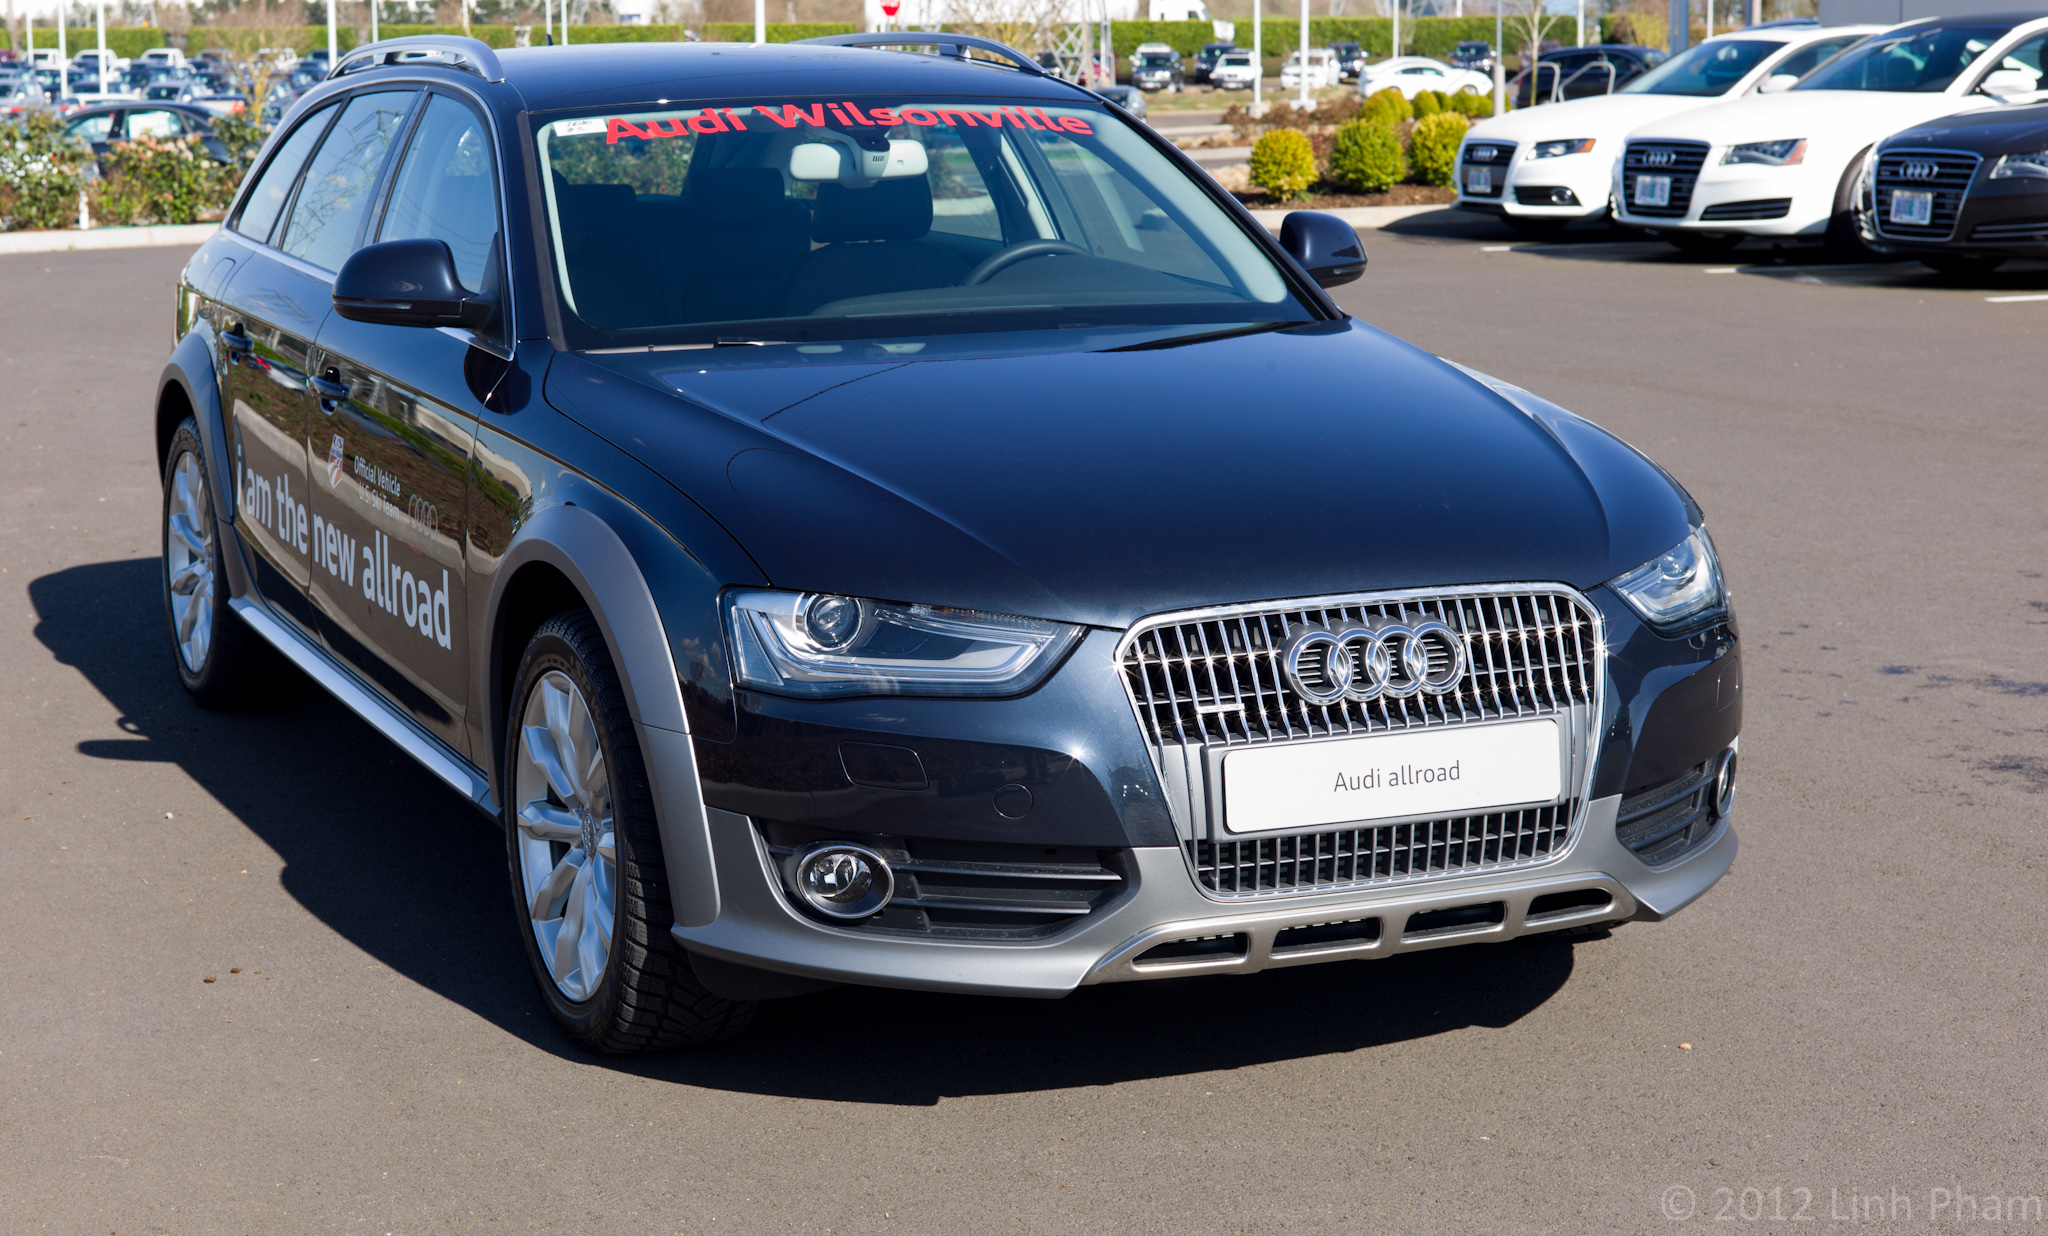 Pictures Of Audi A4 Allroad B8 2011 Auto Database Com